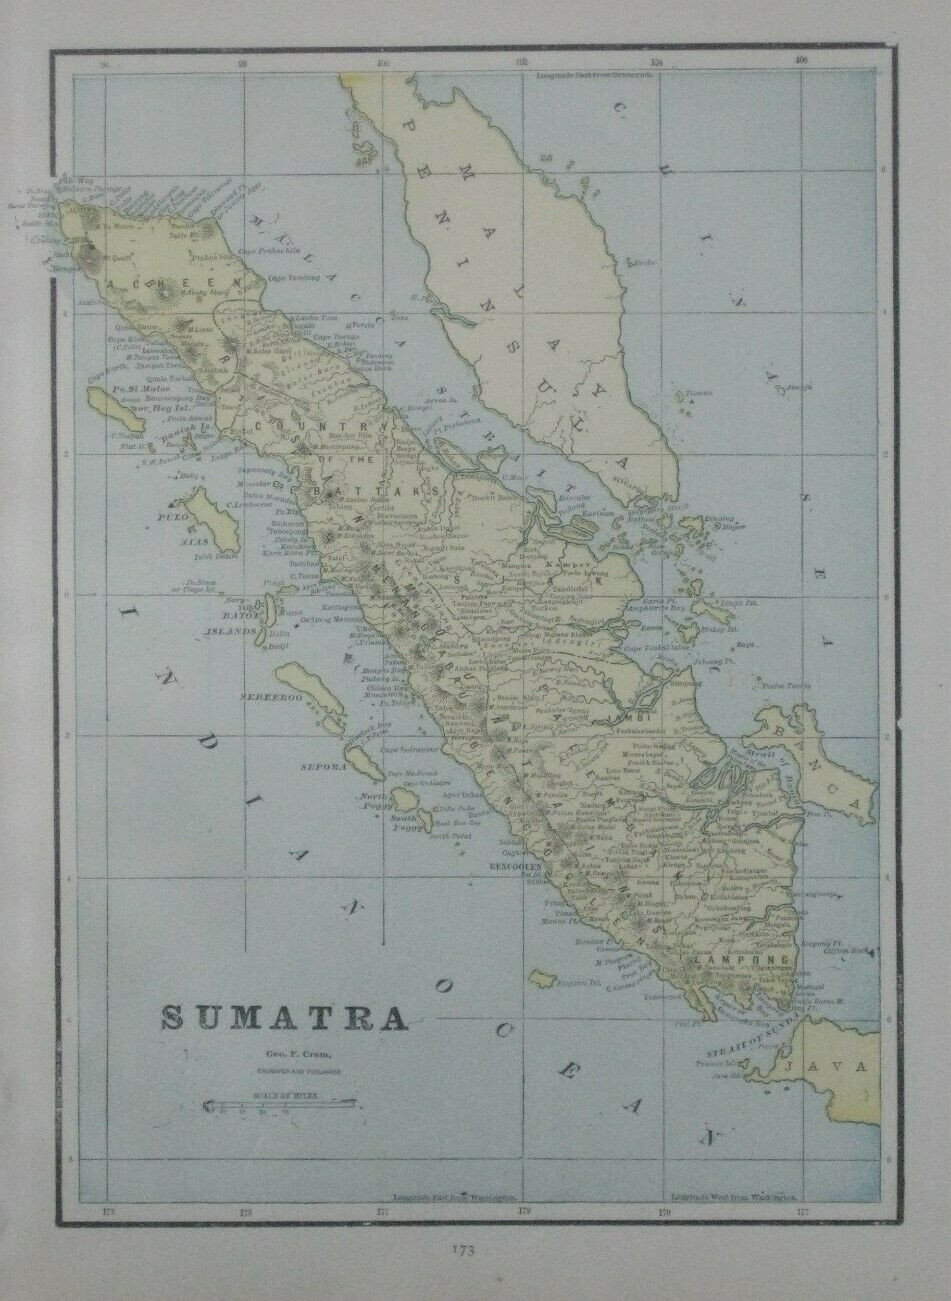 Original 1893 antique color lithographed map of the island of Sumatra, printed more than 125 years ago.